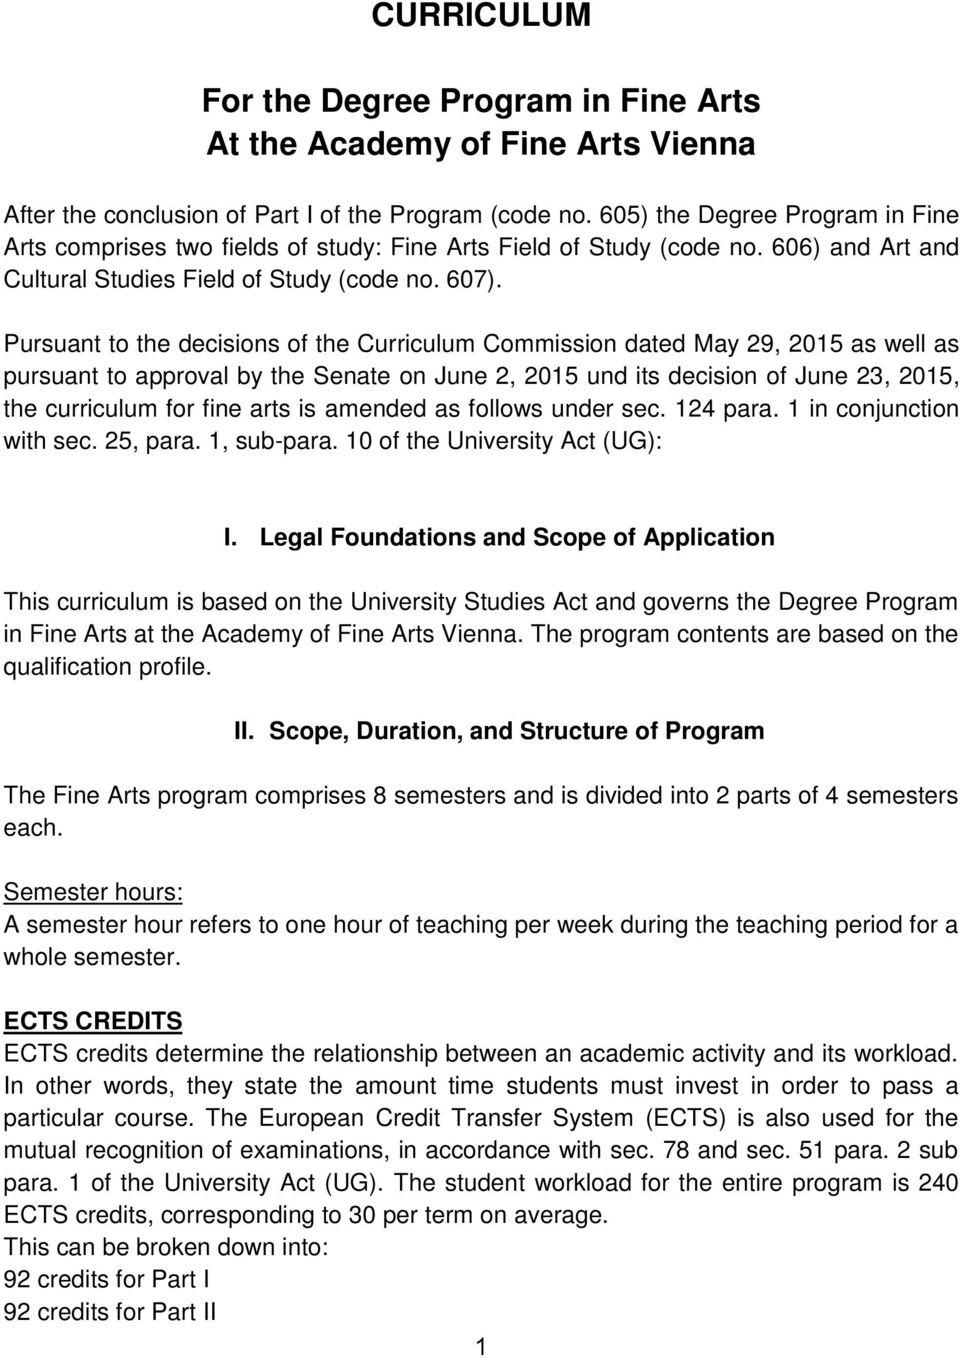 Pursuant to the decisions of the Curriculum Commission dated May 29, 2015 as well as pursuant to approval by the Senate on June 2, 2015 und its decision of June 23, 2015, the curriculum for fine arts